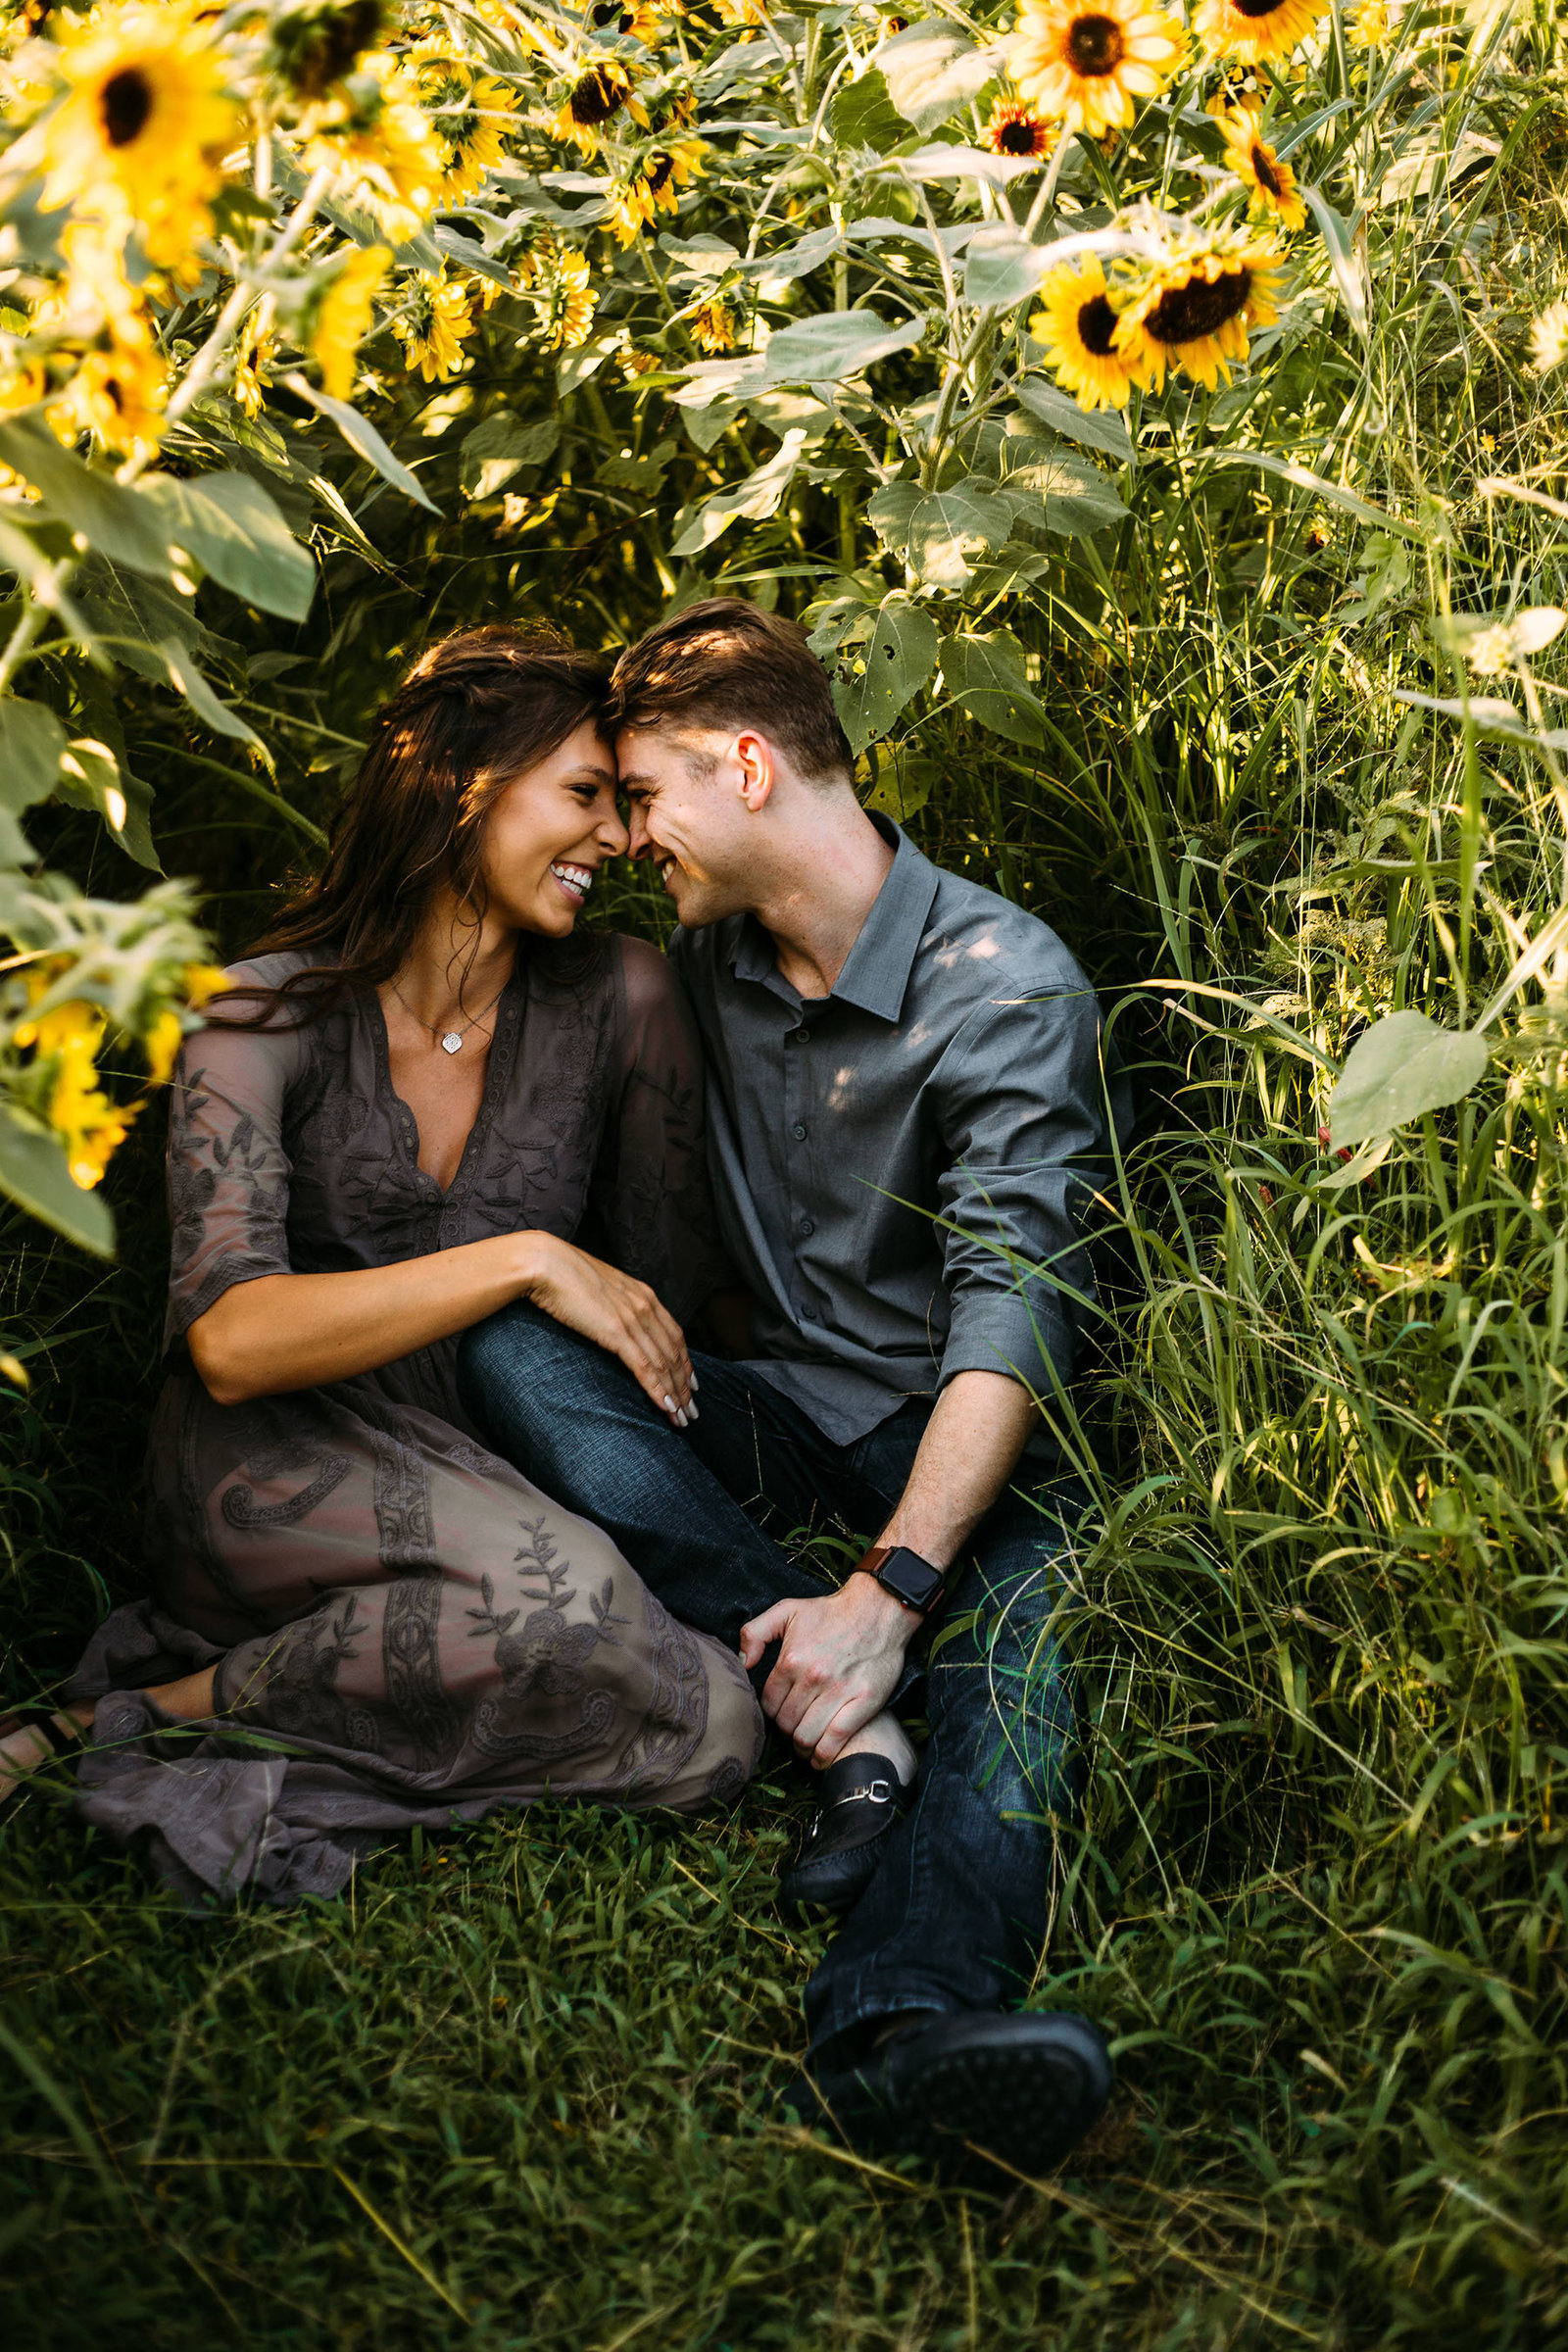 SaraLane-And-Stevie-Engagement-Photography-Murfreesboro-Nashville-TN-AustinMackenzie--16PS